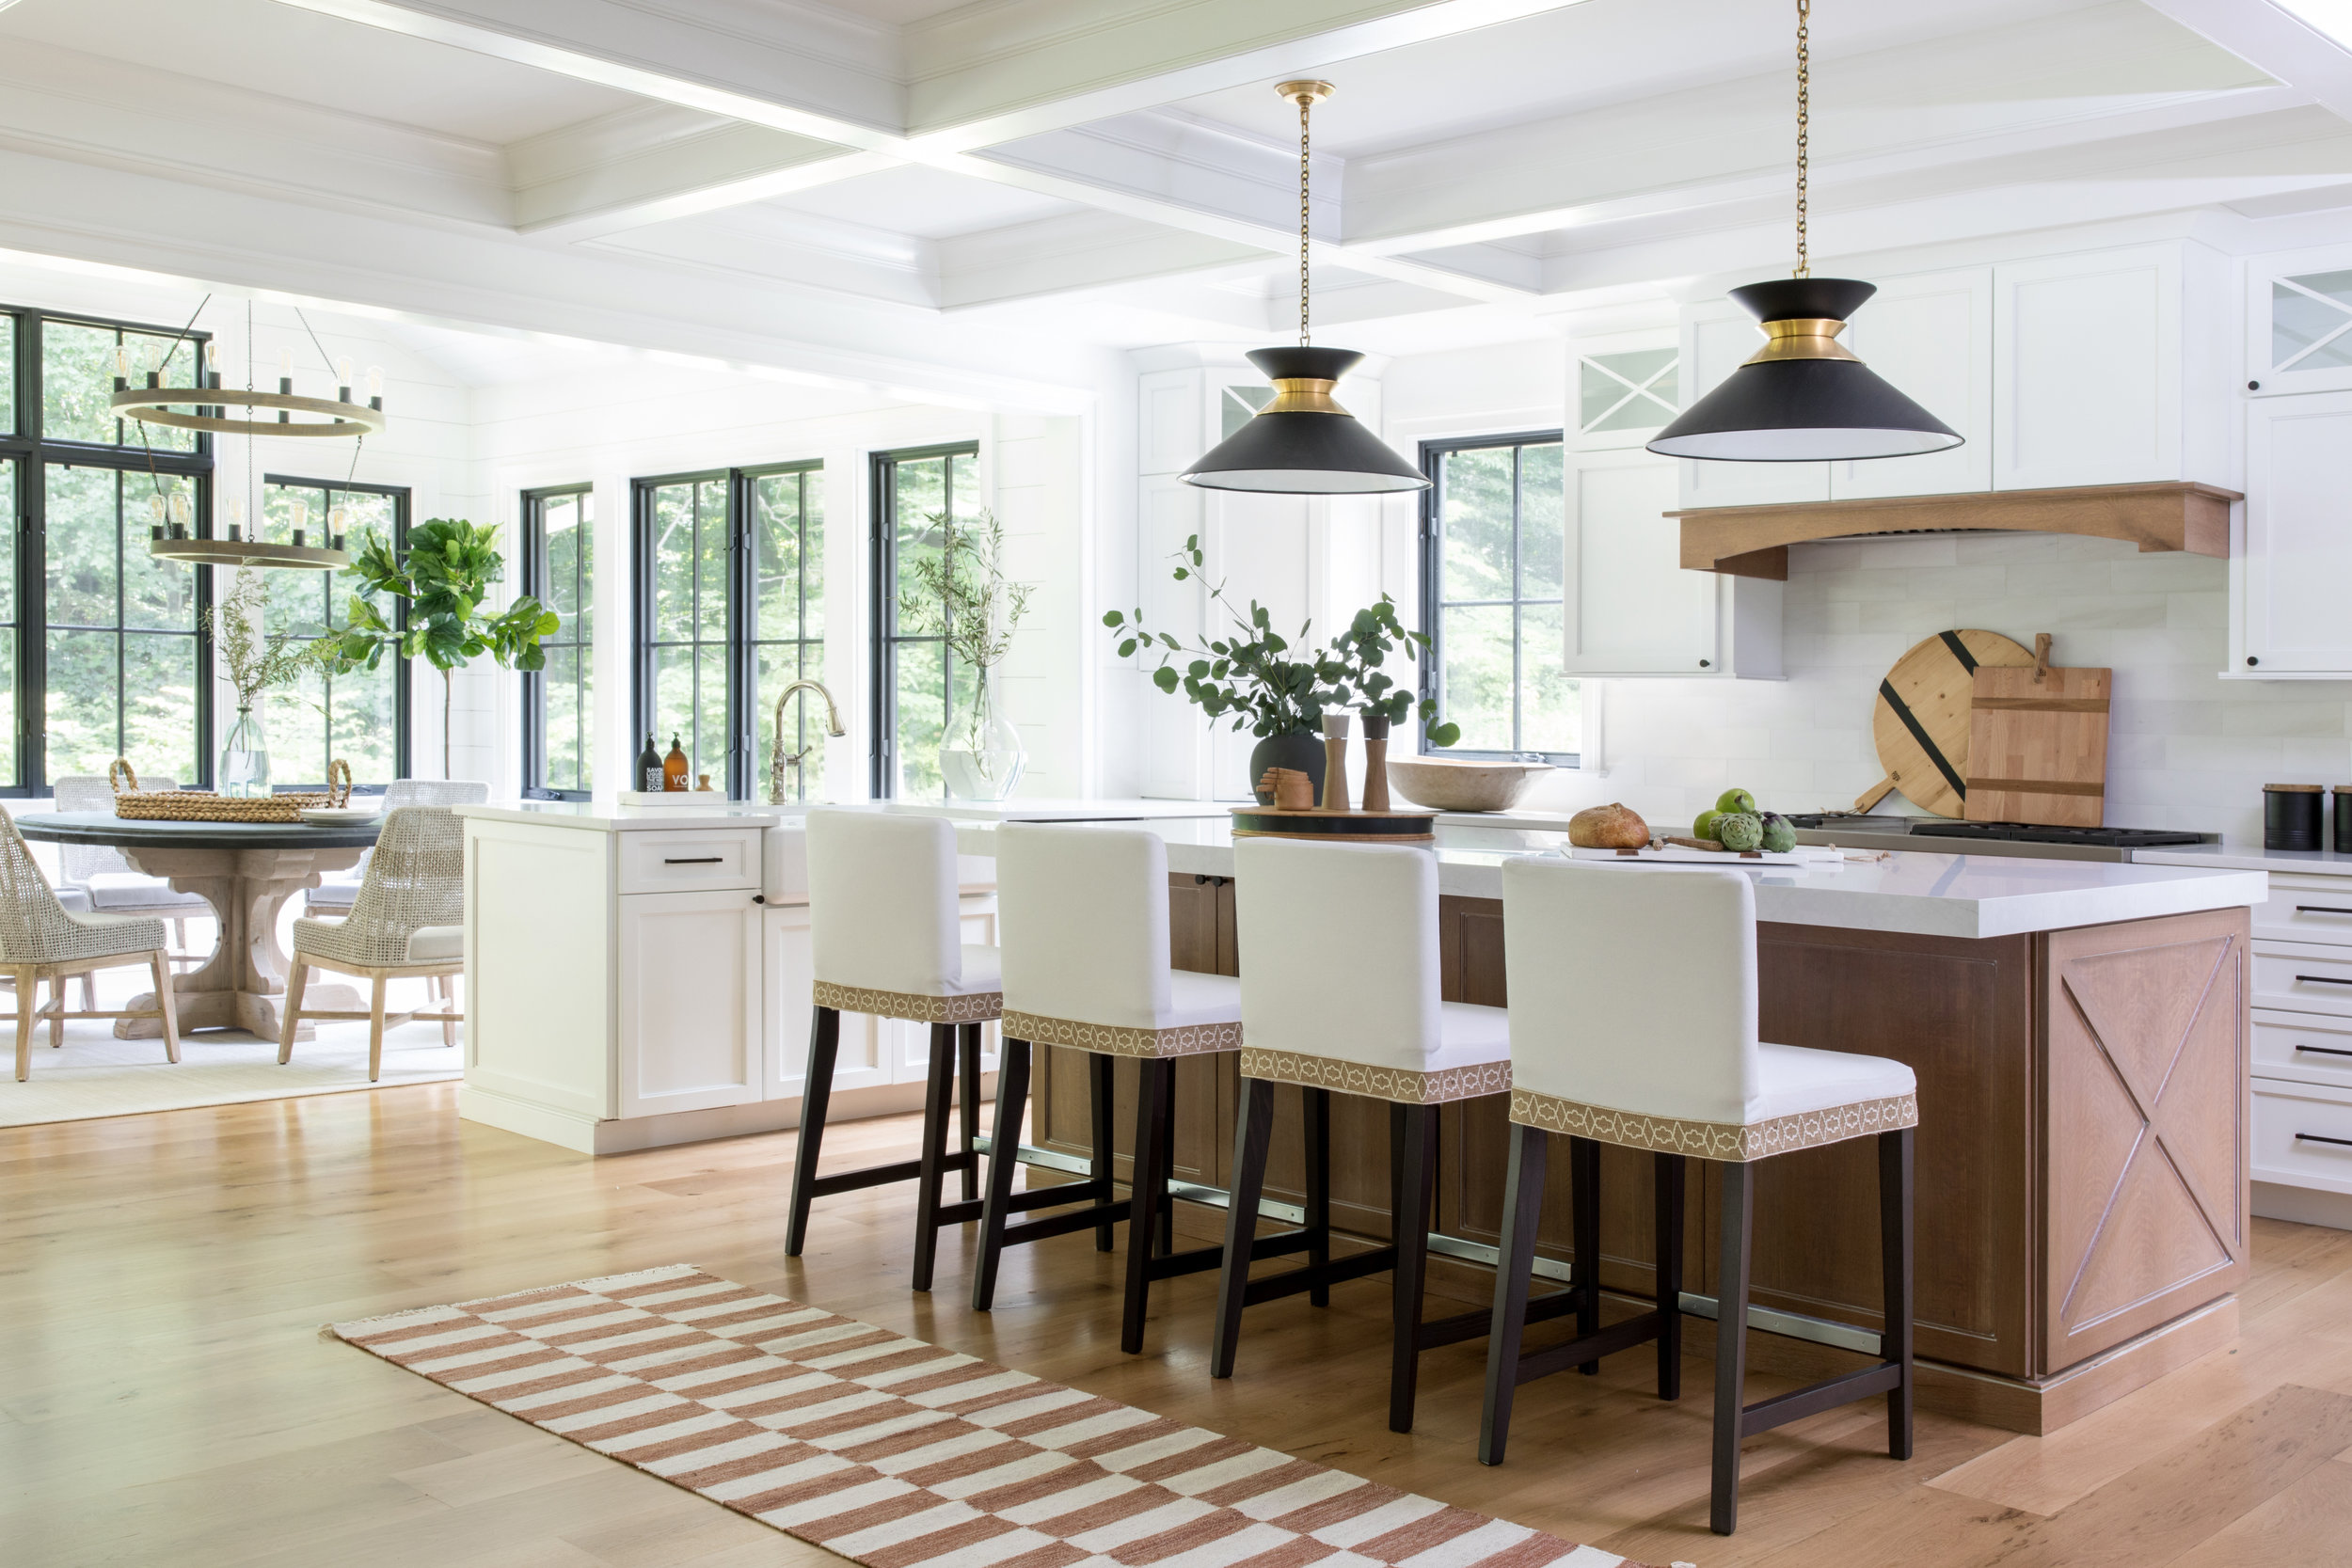 House Tour-  I Love This House's Modern Twist on Classic Traditional Style 9.jpeg